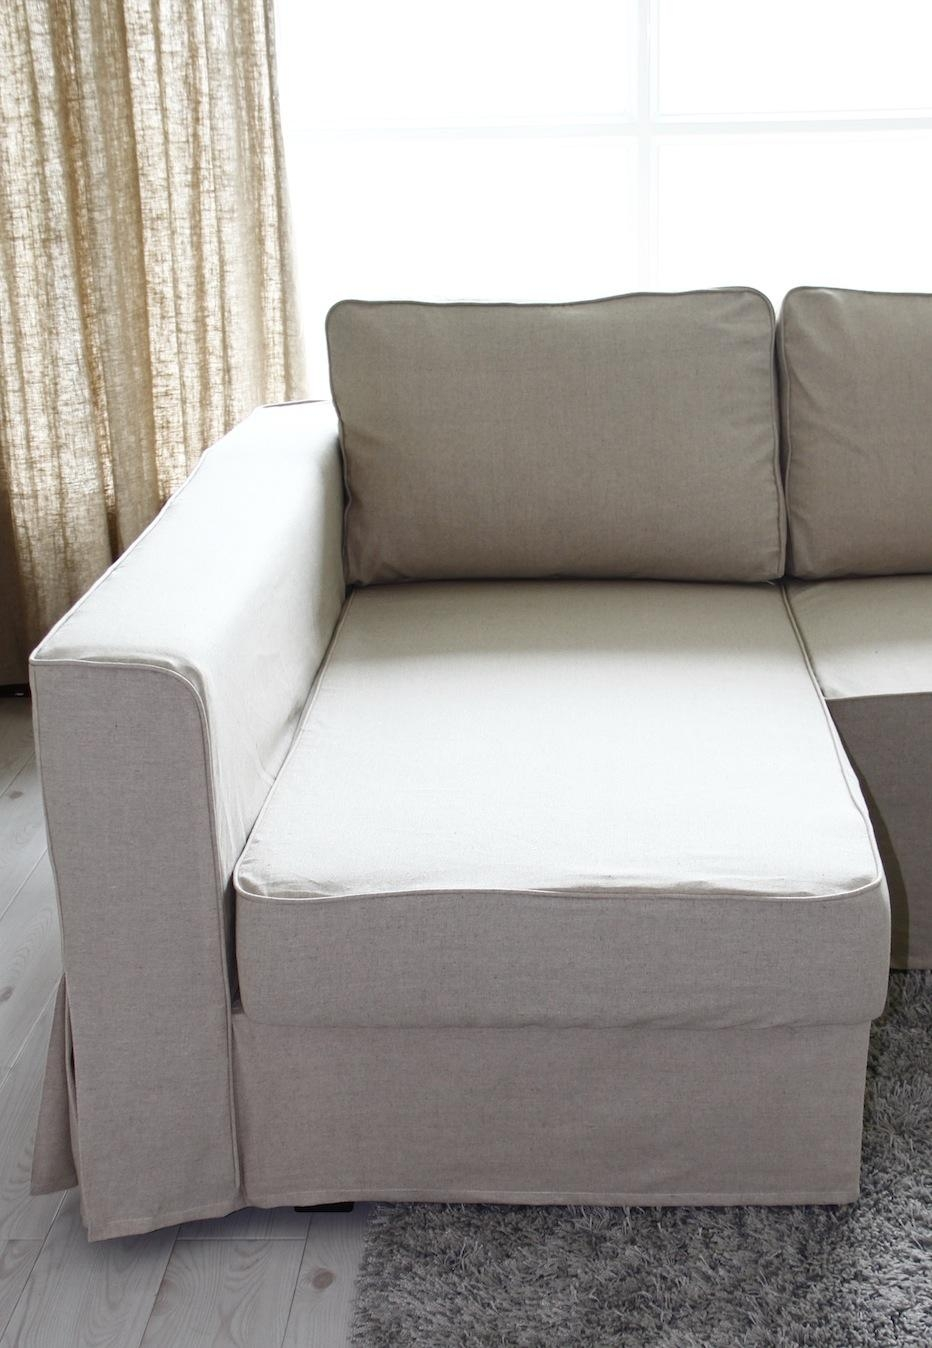 Furniture & Rug: Slipcovers For Sofas With Cushions Separate In Armless Slipcovers (Photo 19 of 20)